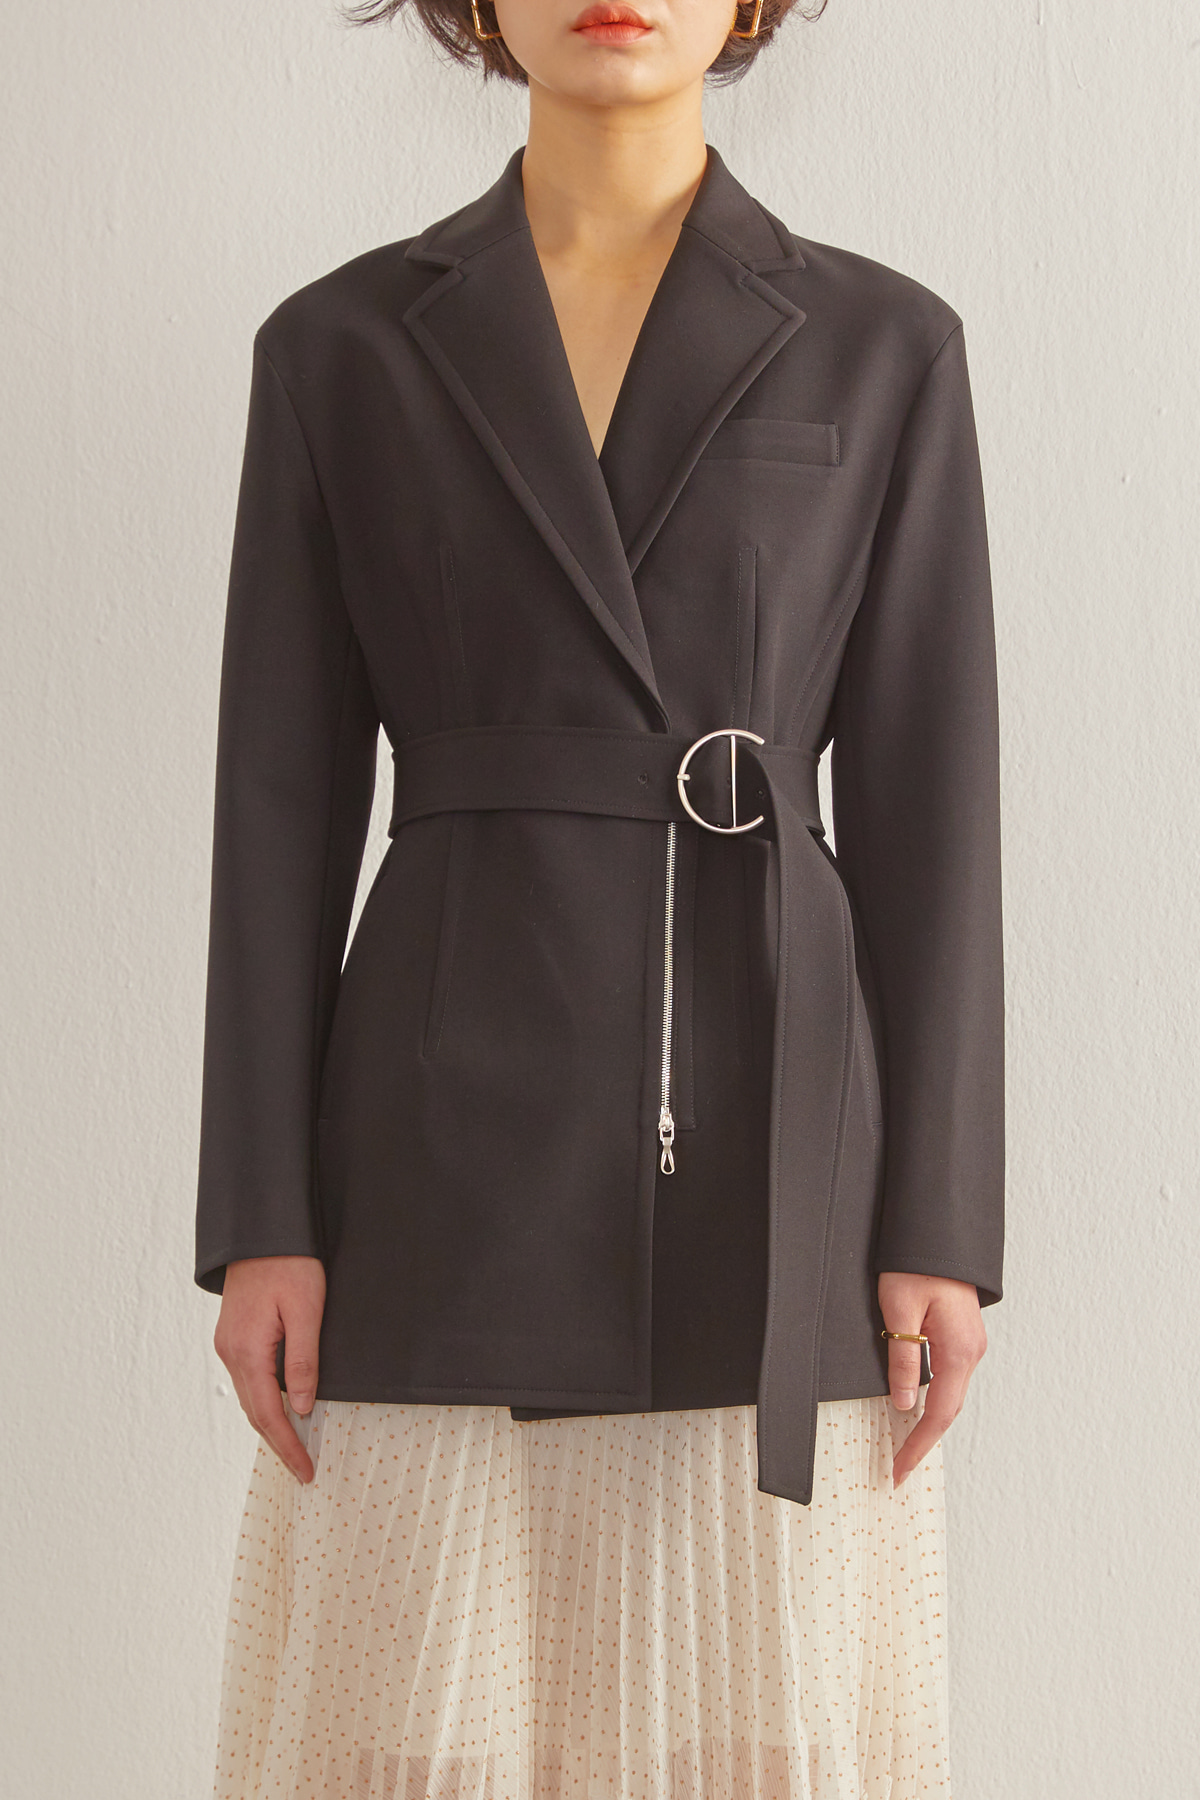 Hourglass Silhouette Jacket with Belt Black